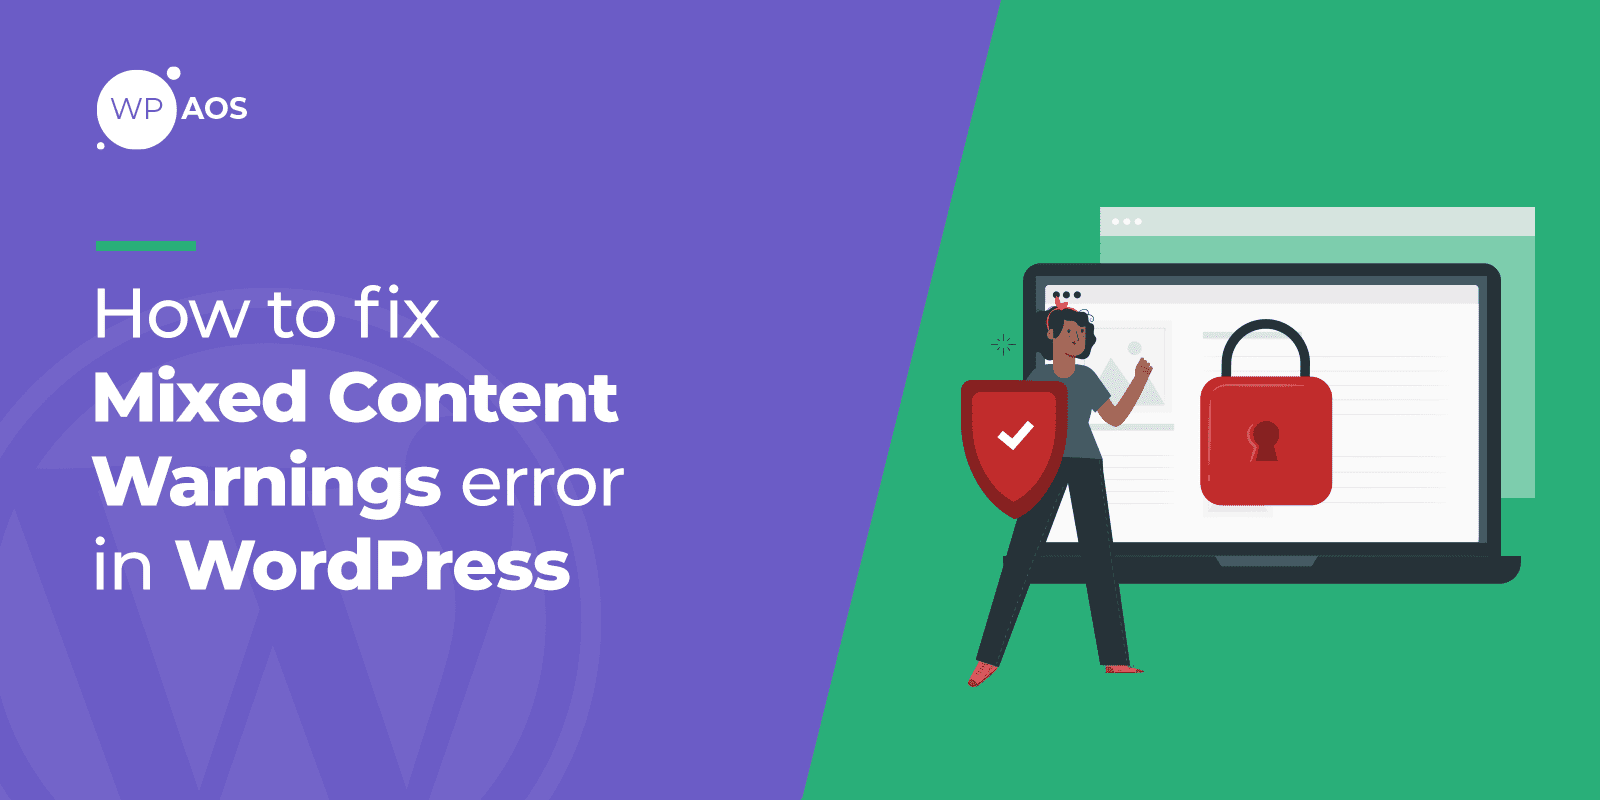 Mixed Content Warnings Error in WordPress, WooCommerce Maintenance, Website Support, wpaos